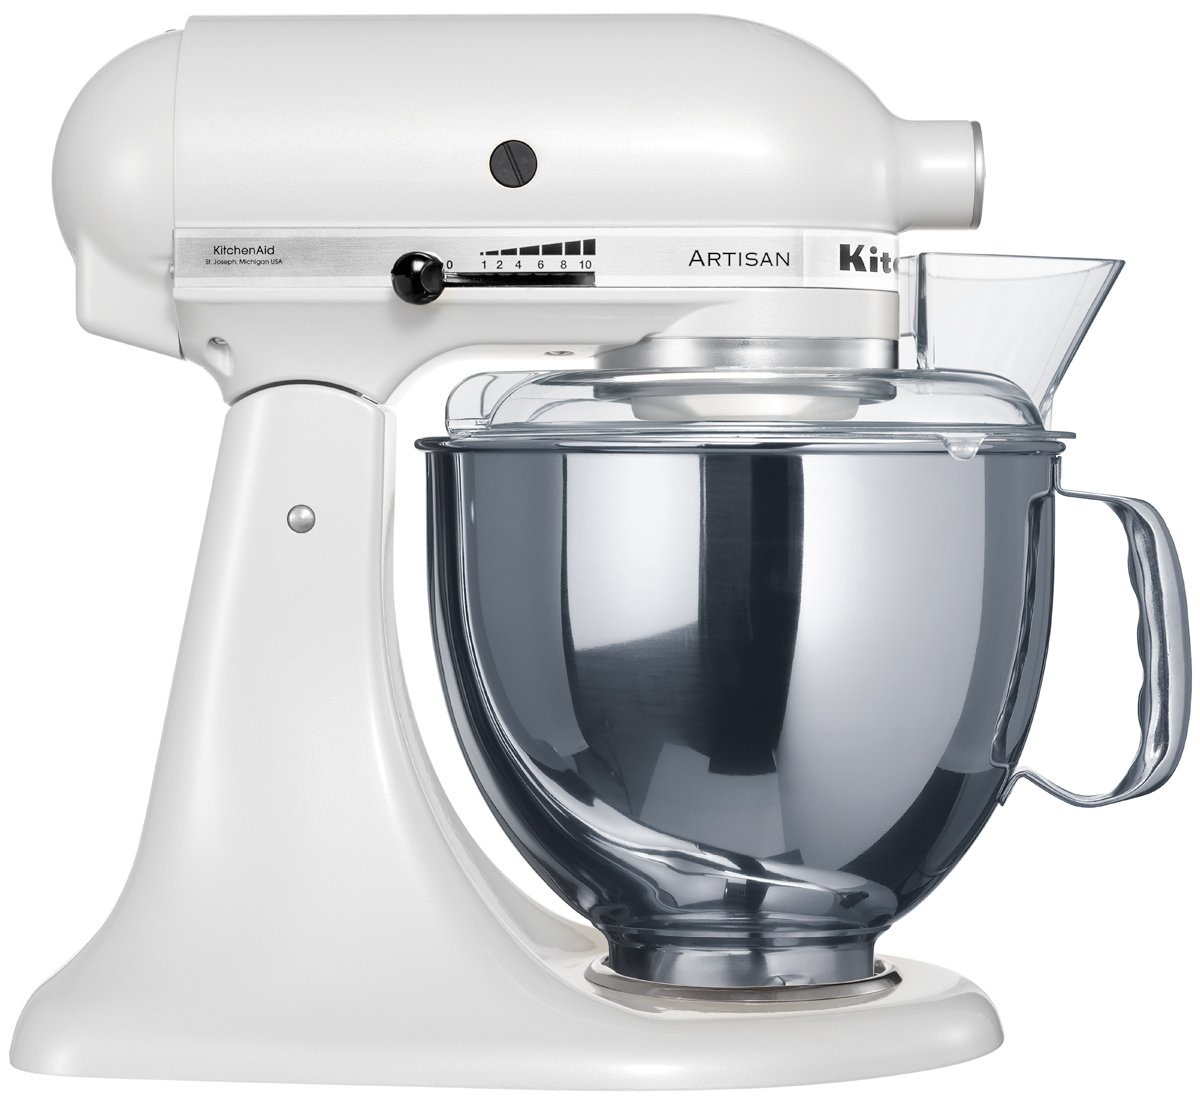 Kitchenaid mixer diagram kitchenaid classic parts elsavadorla Kitchenaid artisan replacement parts